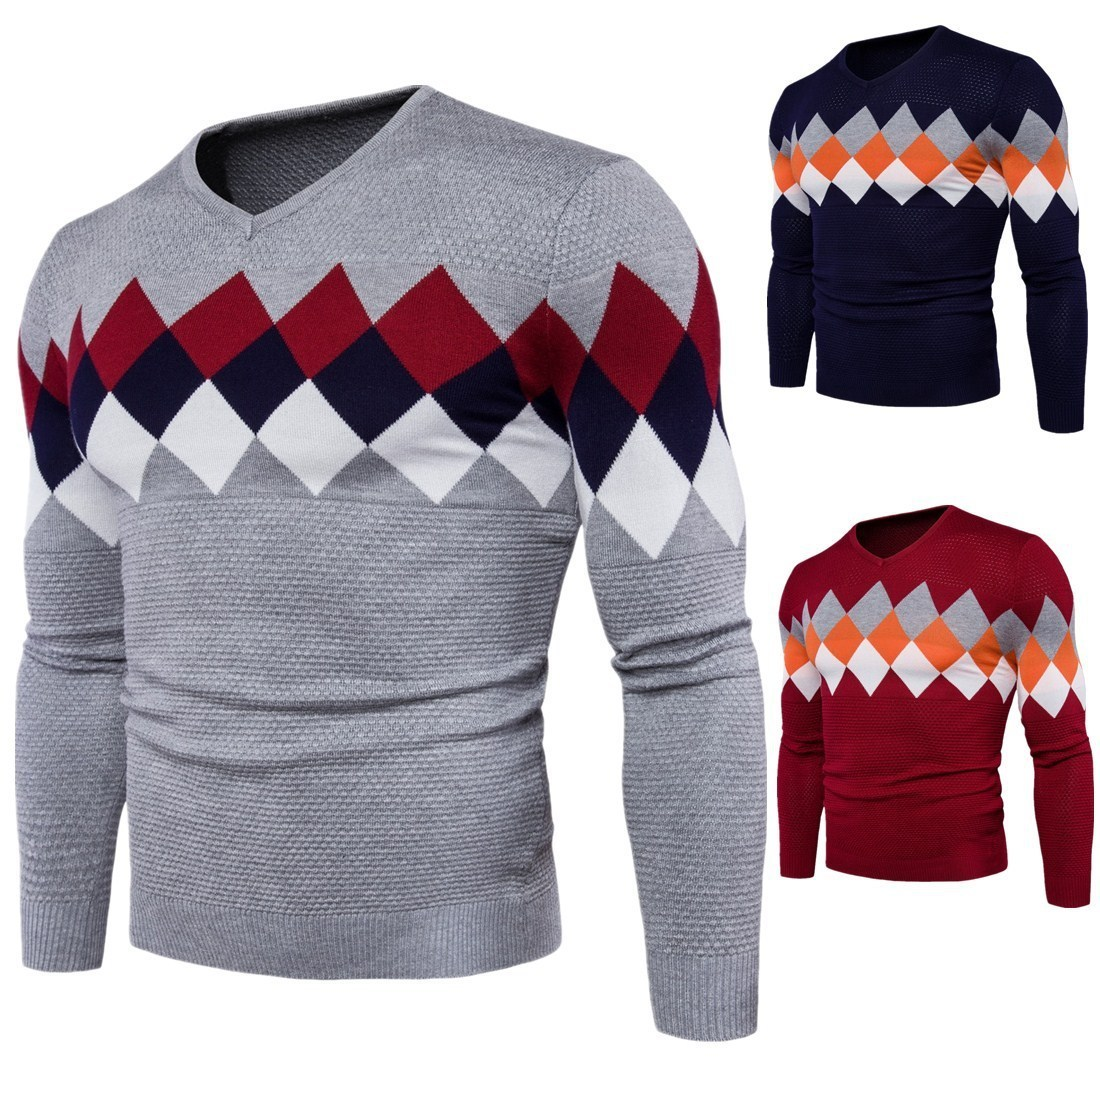 Sweater Pullover Men 2019 Male Brand Casual Slim Sweaters Men V-necked Checkered Pattern Hedging Zipper Men's Sweater